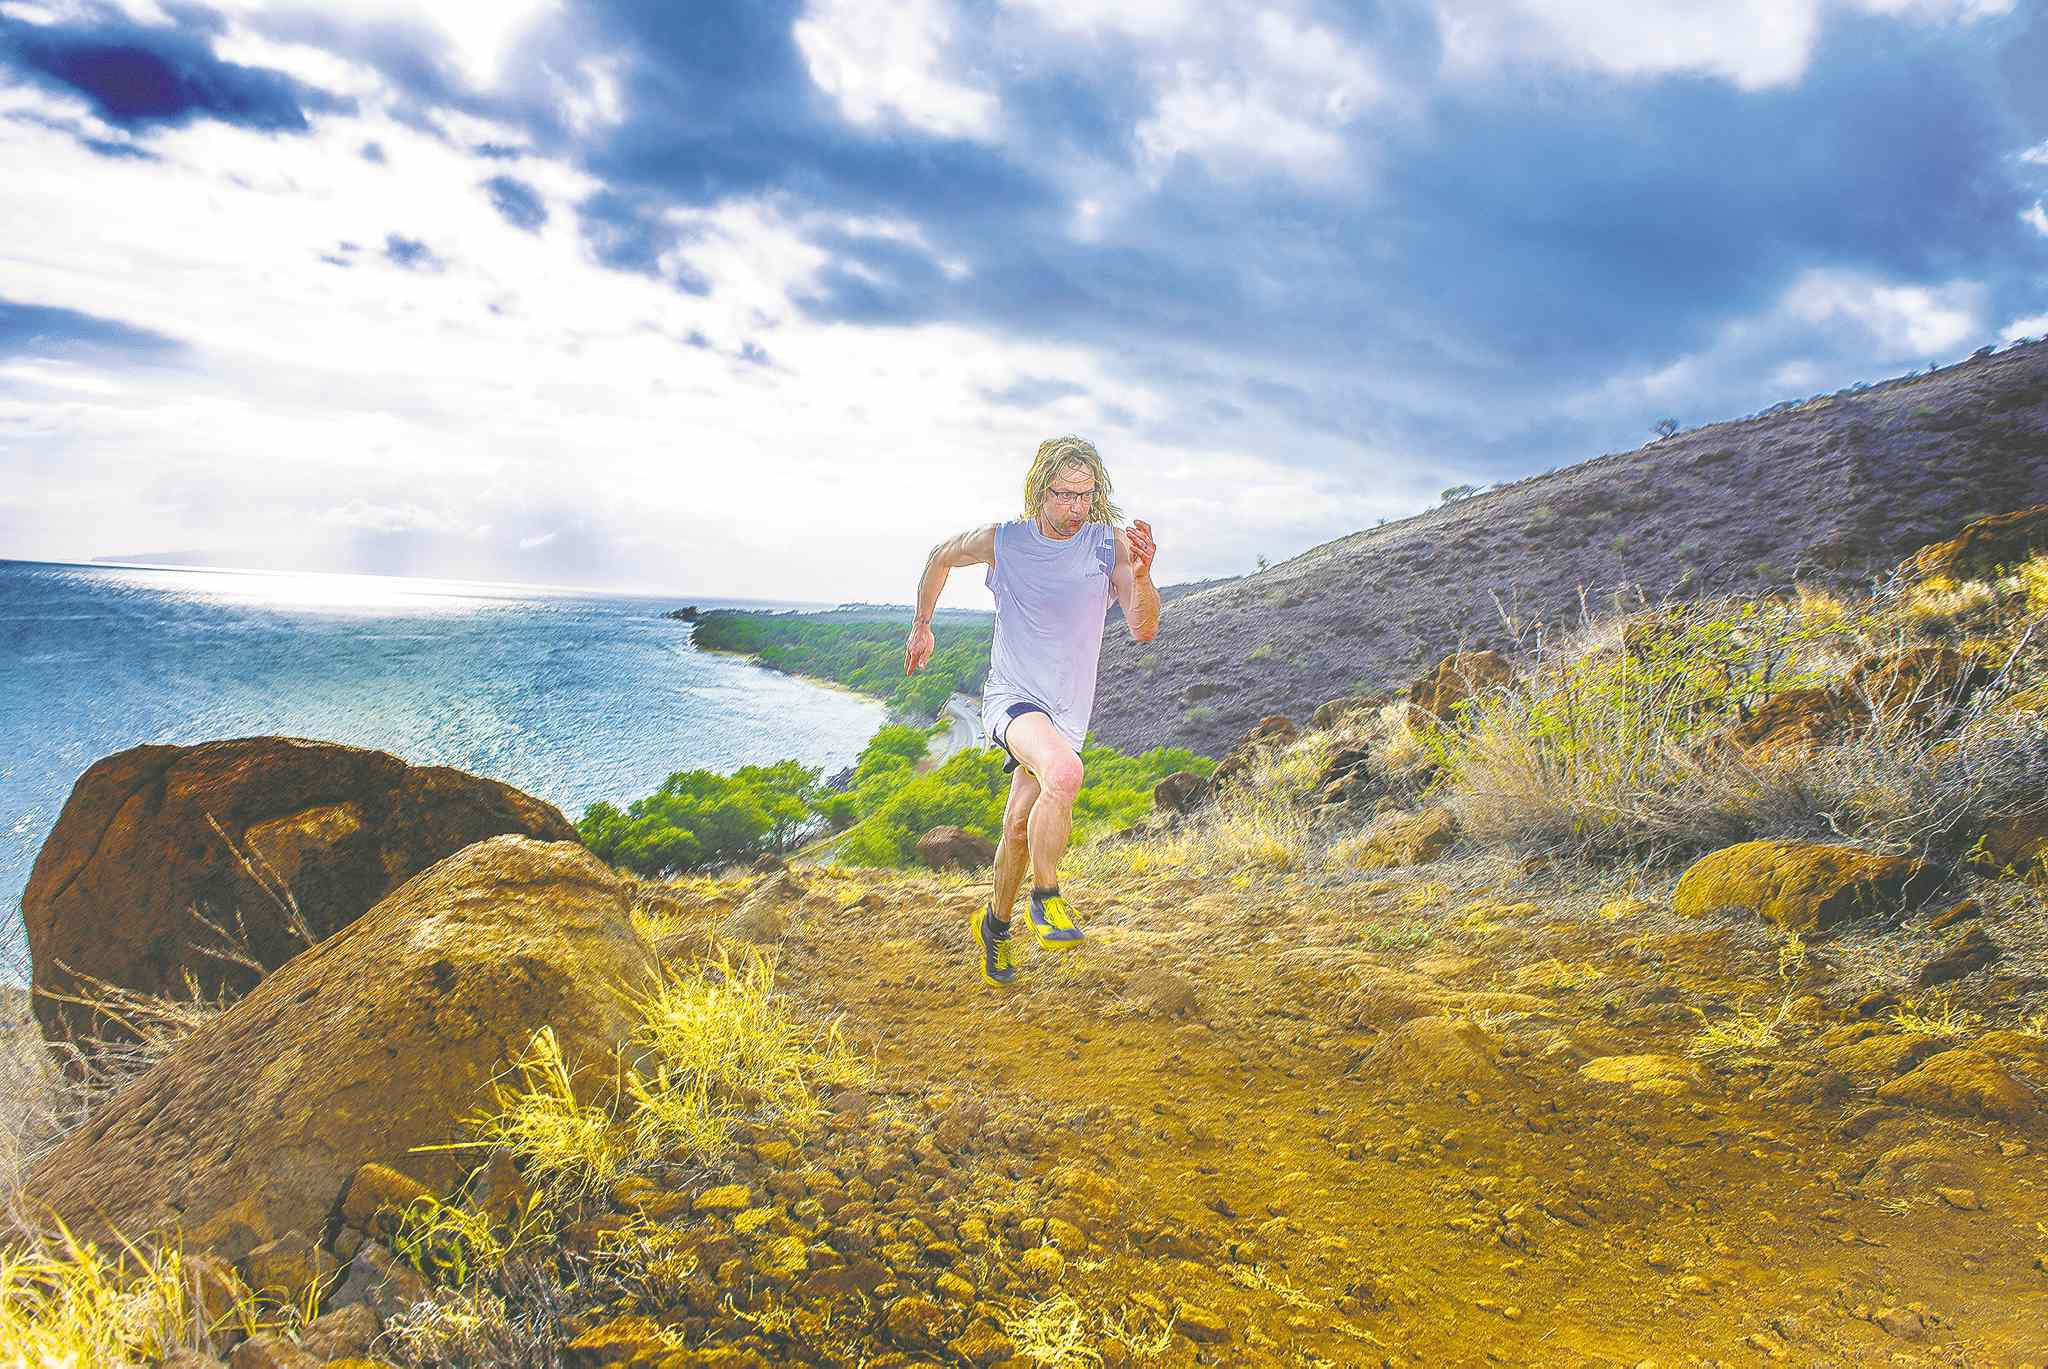 Peter Estabrooks running in Maui.